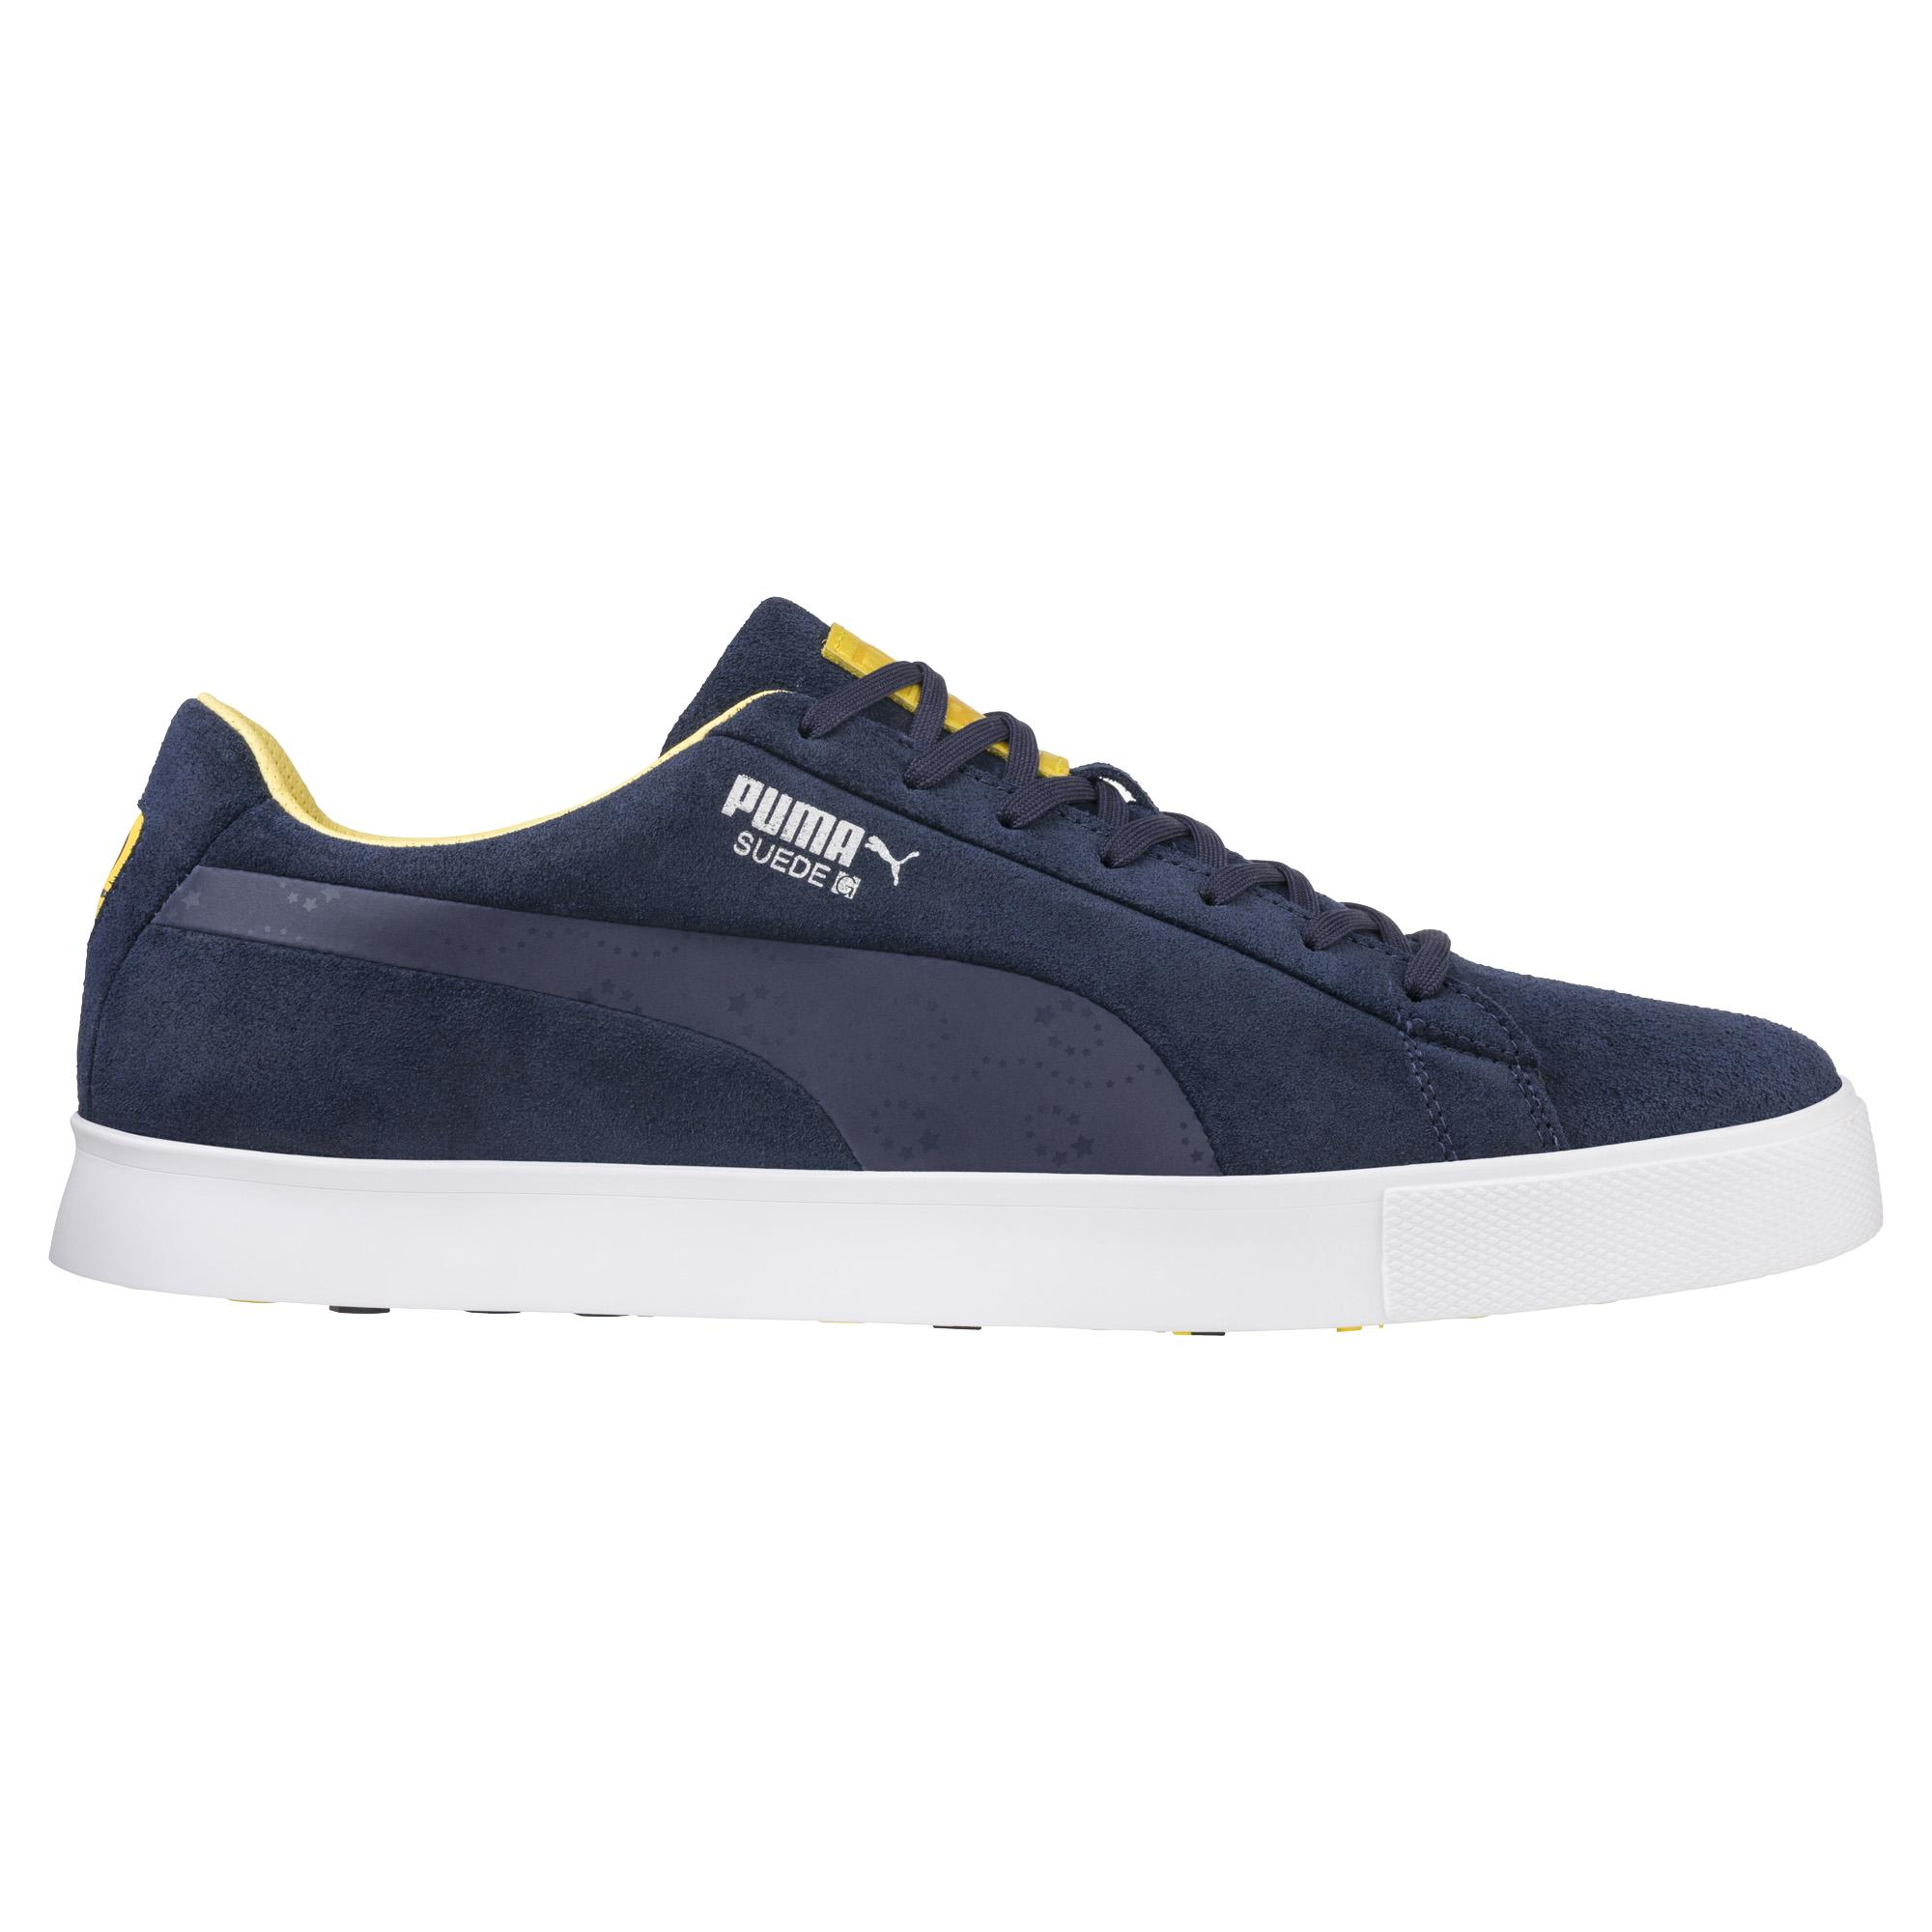 Men's Suede G Ryder EU Spikeless Golf Shoe